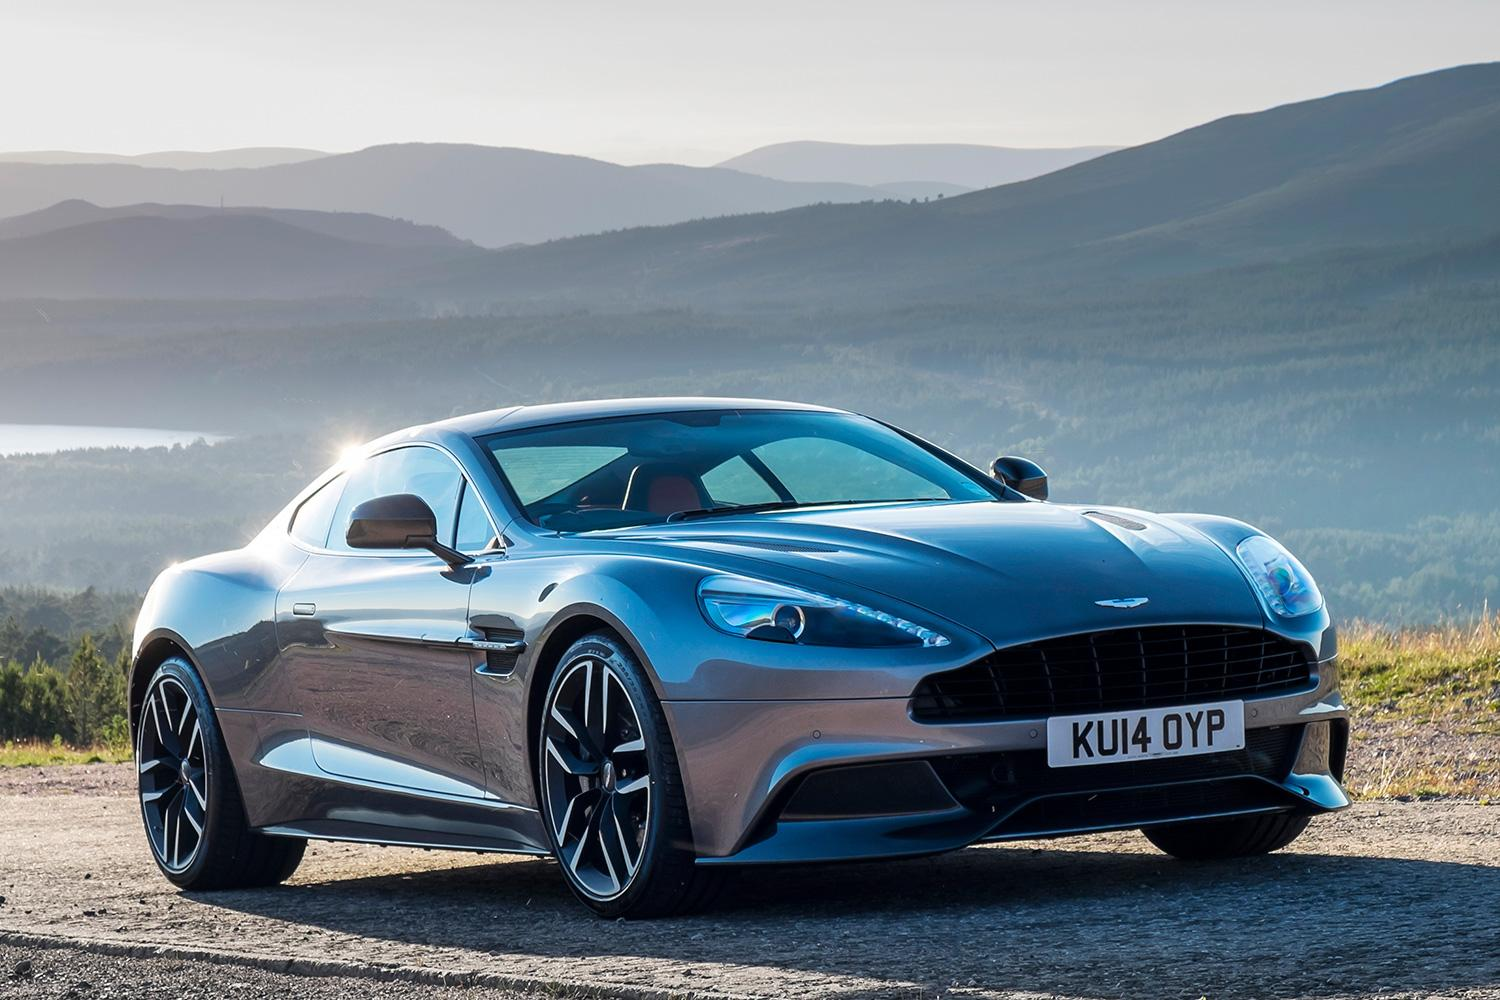 Aston Martin Vanquish and Vantage replacements coming ...